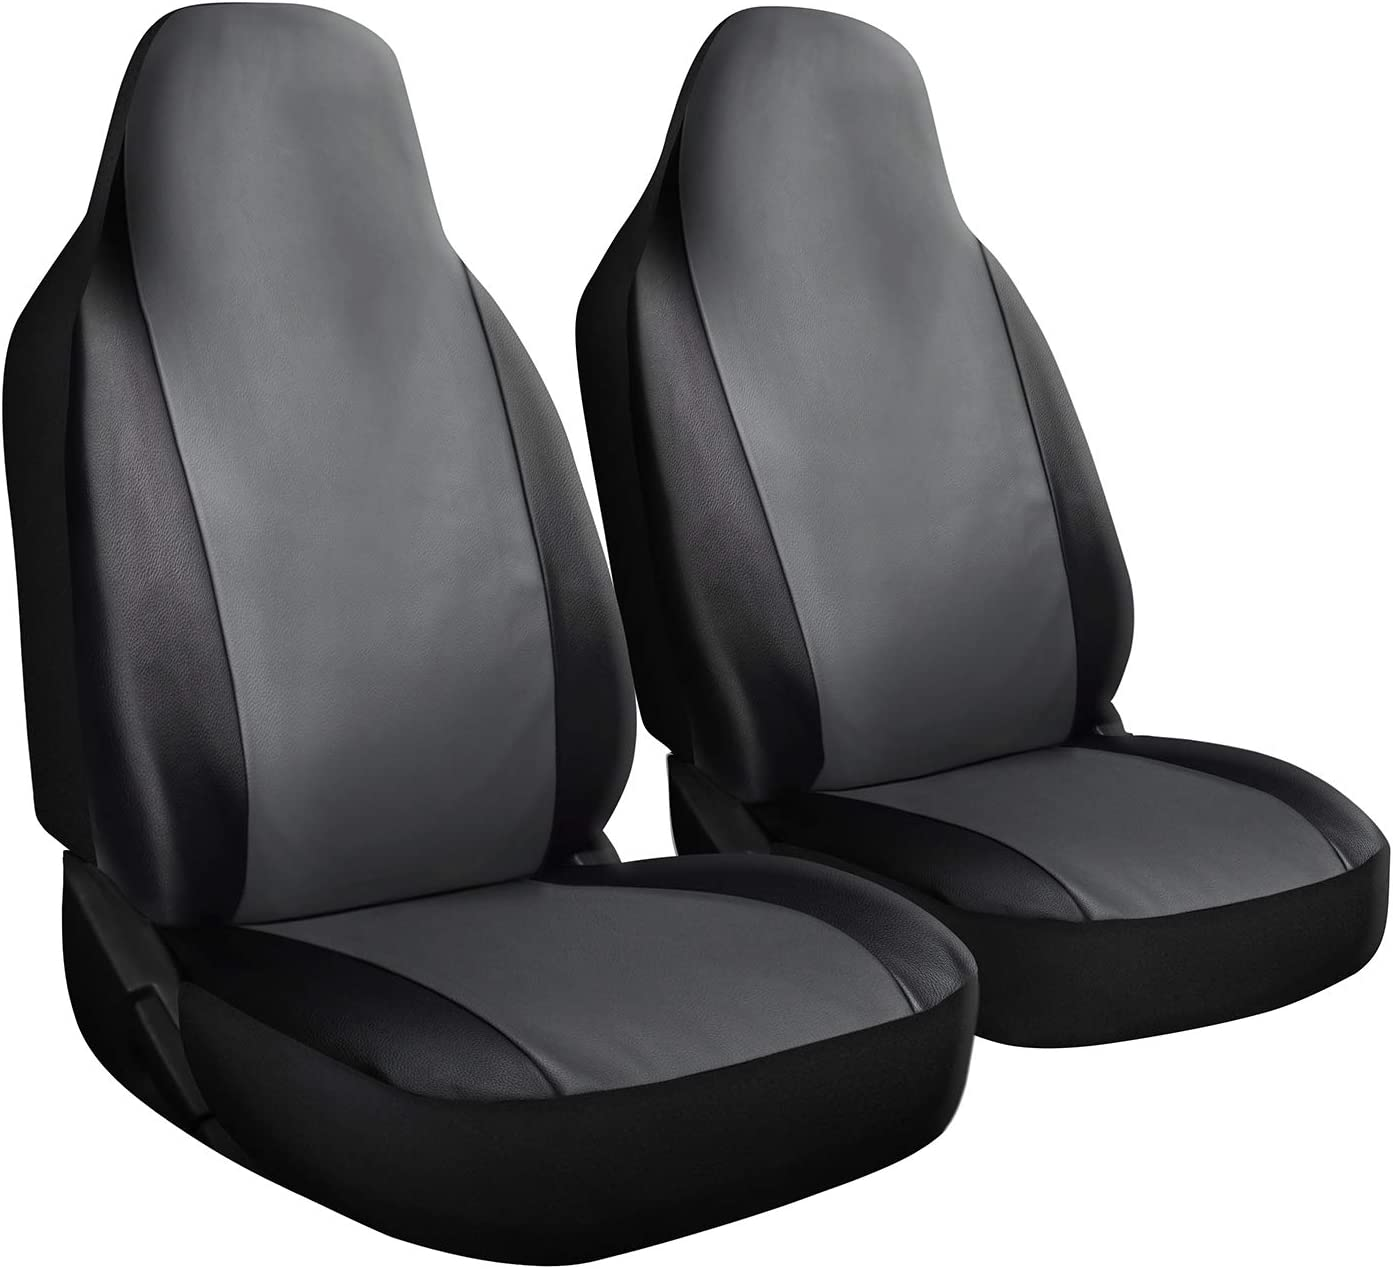 OxGord Car Seat Cover - PU Leather Two Toned with Front Low Bucket Seat - Universal Fit for Cars, Trucks, SUVs, Vans - 2 pc Set